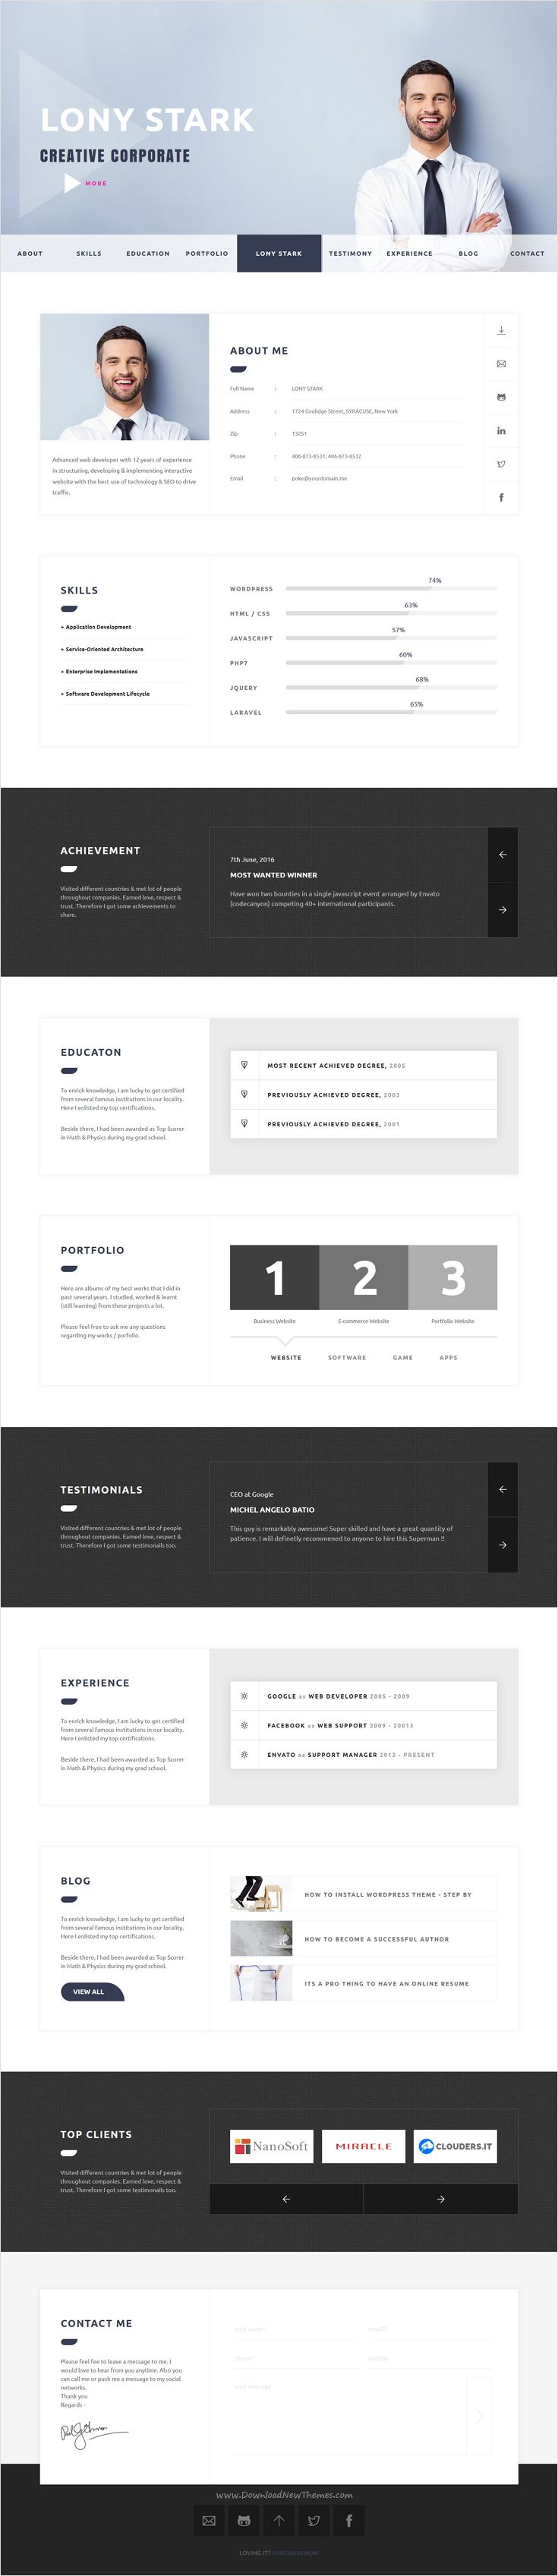 CVitae is responsive materialized HTML template for